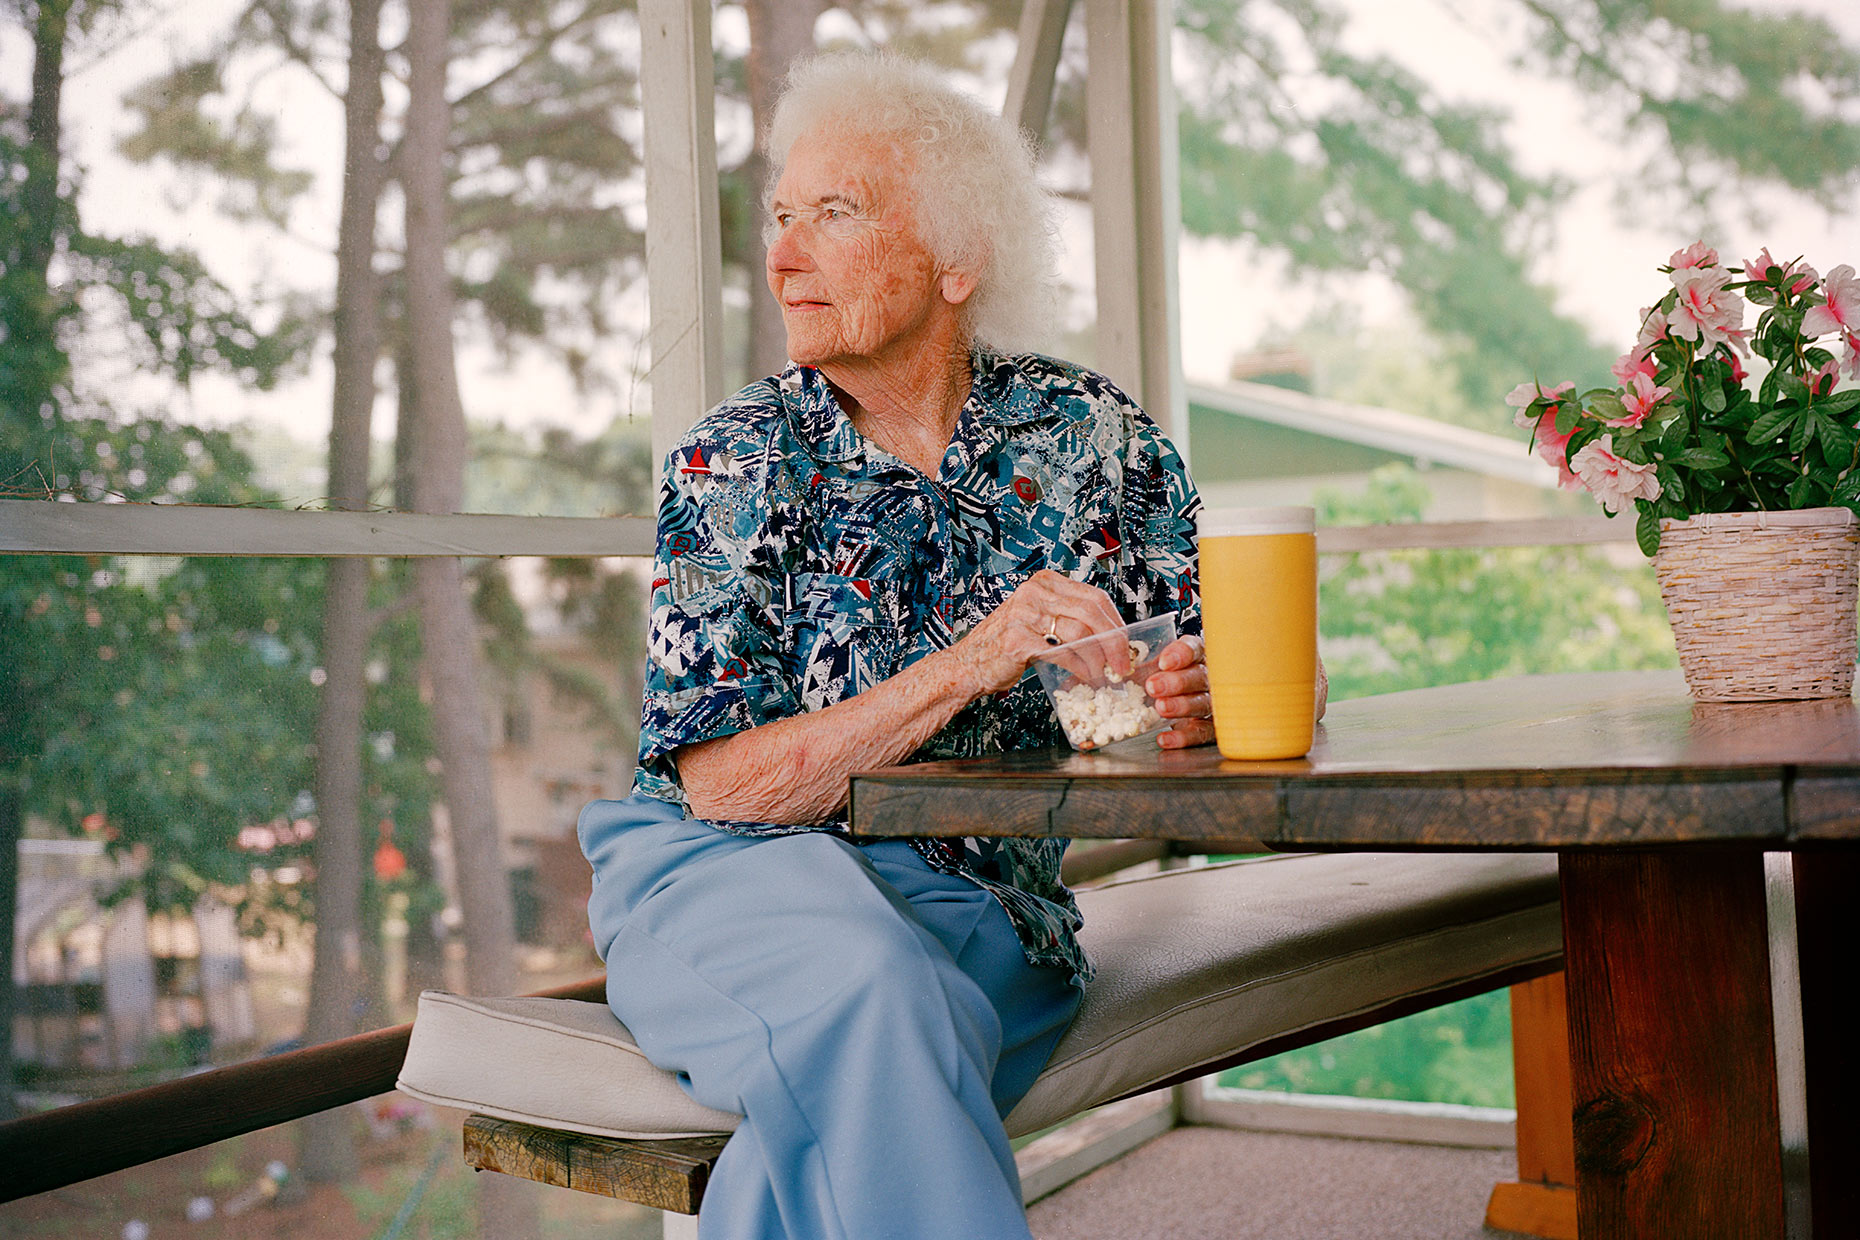 29NEW_PORTFOLIO_107Granny_popcorn_RETOUCHED_35mm_PROC